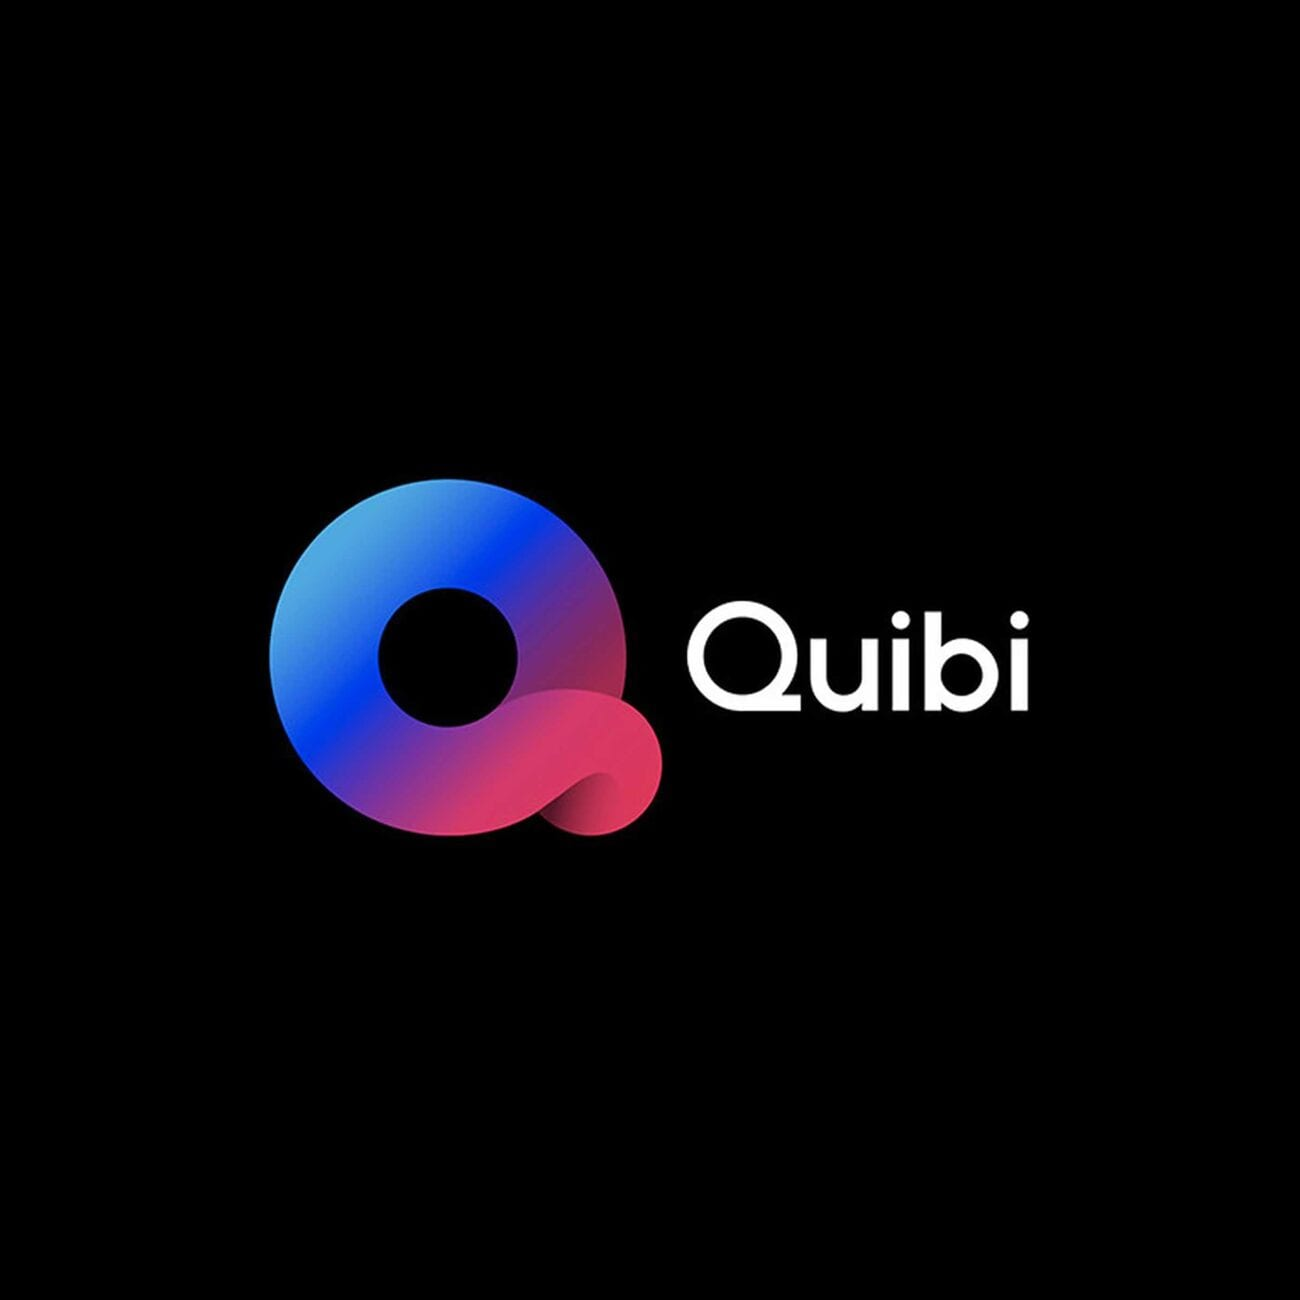 Quibi is the latest hot streaming platform, well actually no, they were hoping to be the latest hot streaming platform. Here are the worst shows they offer.